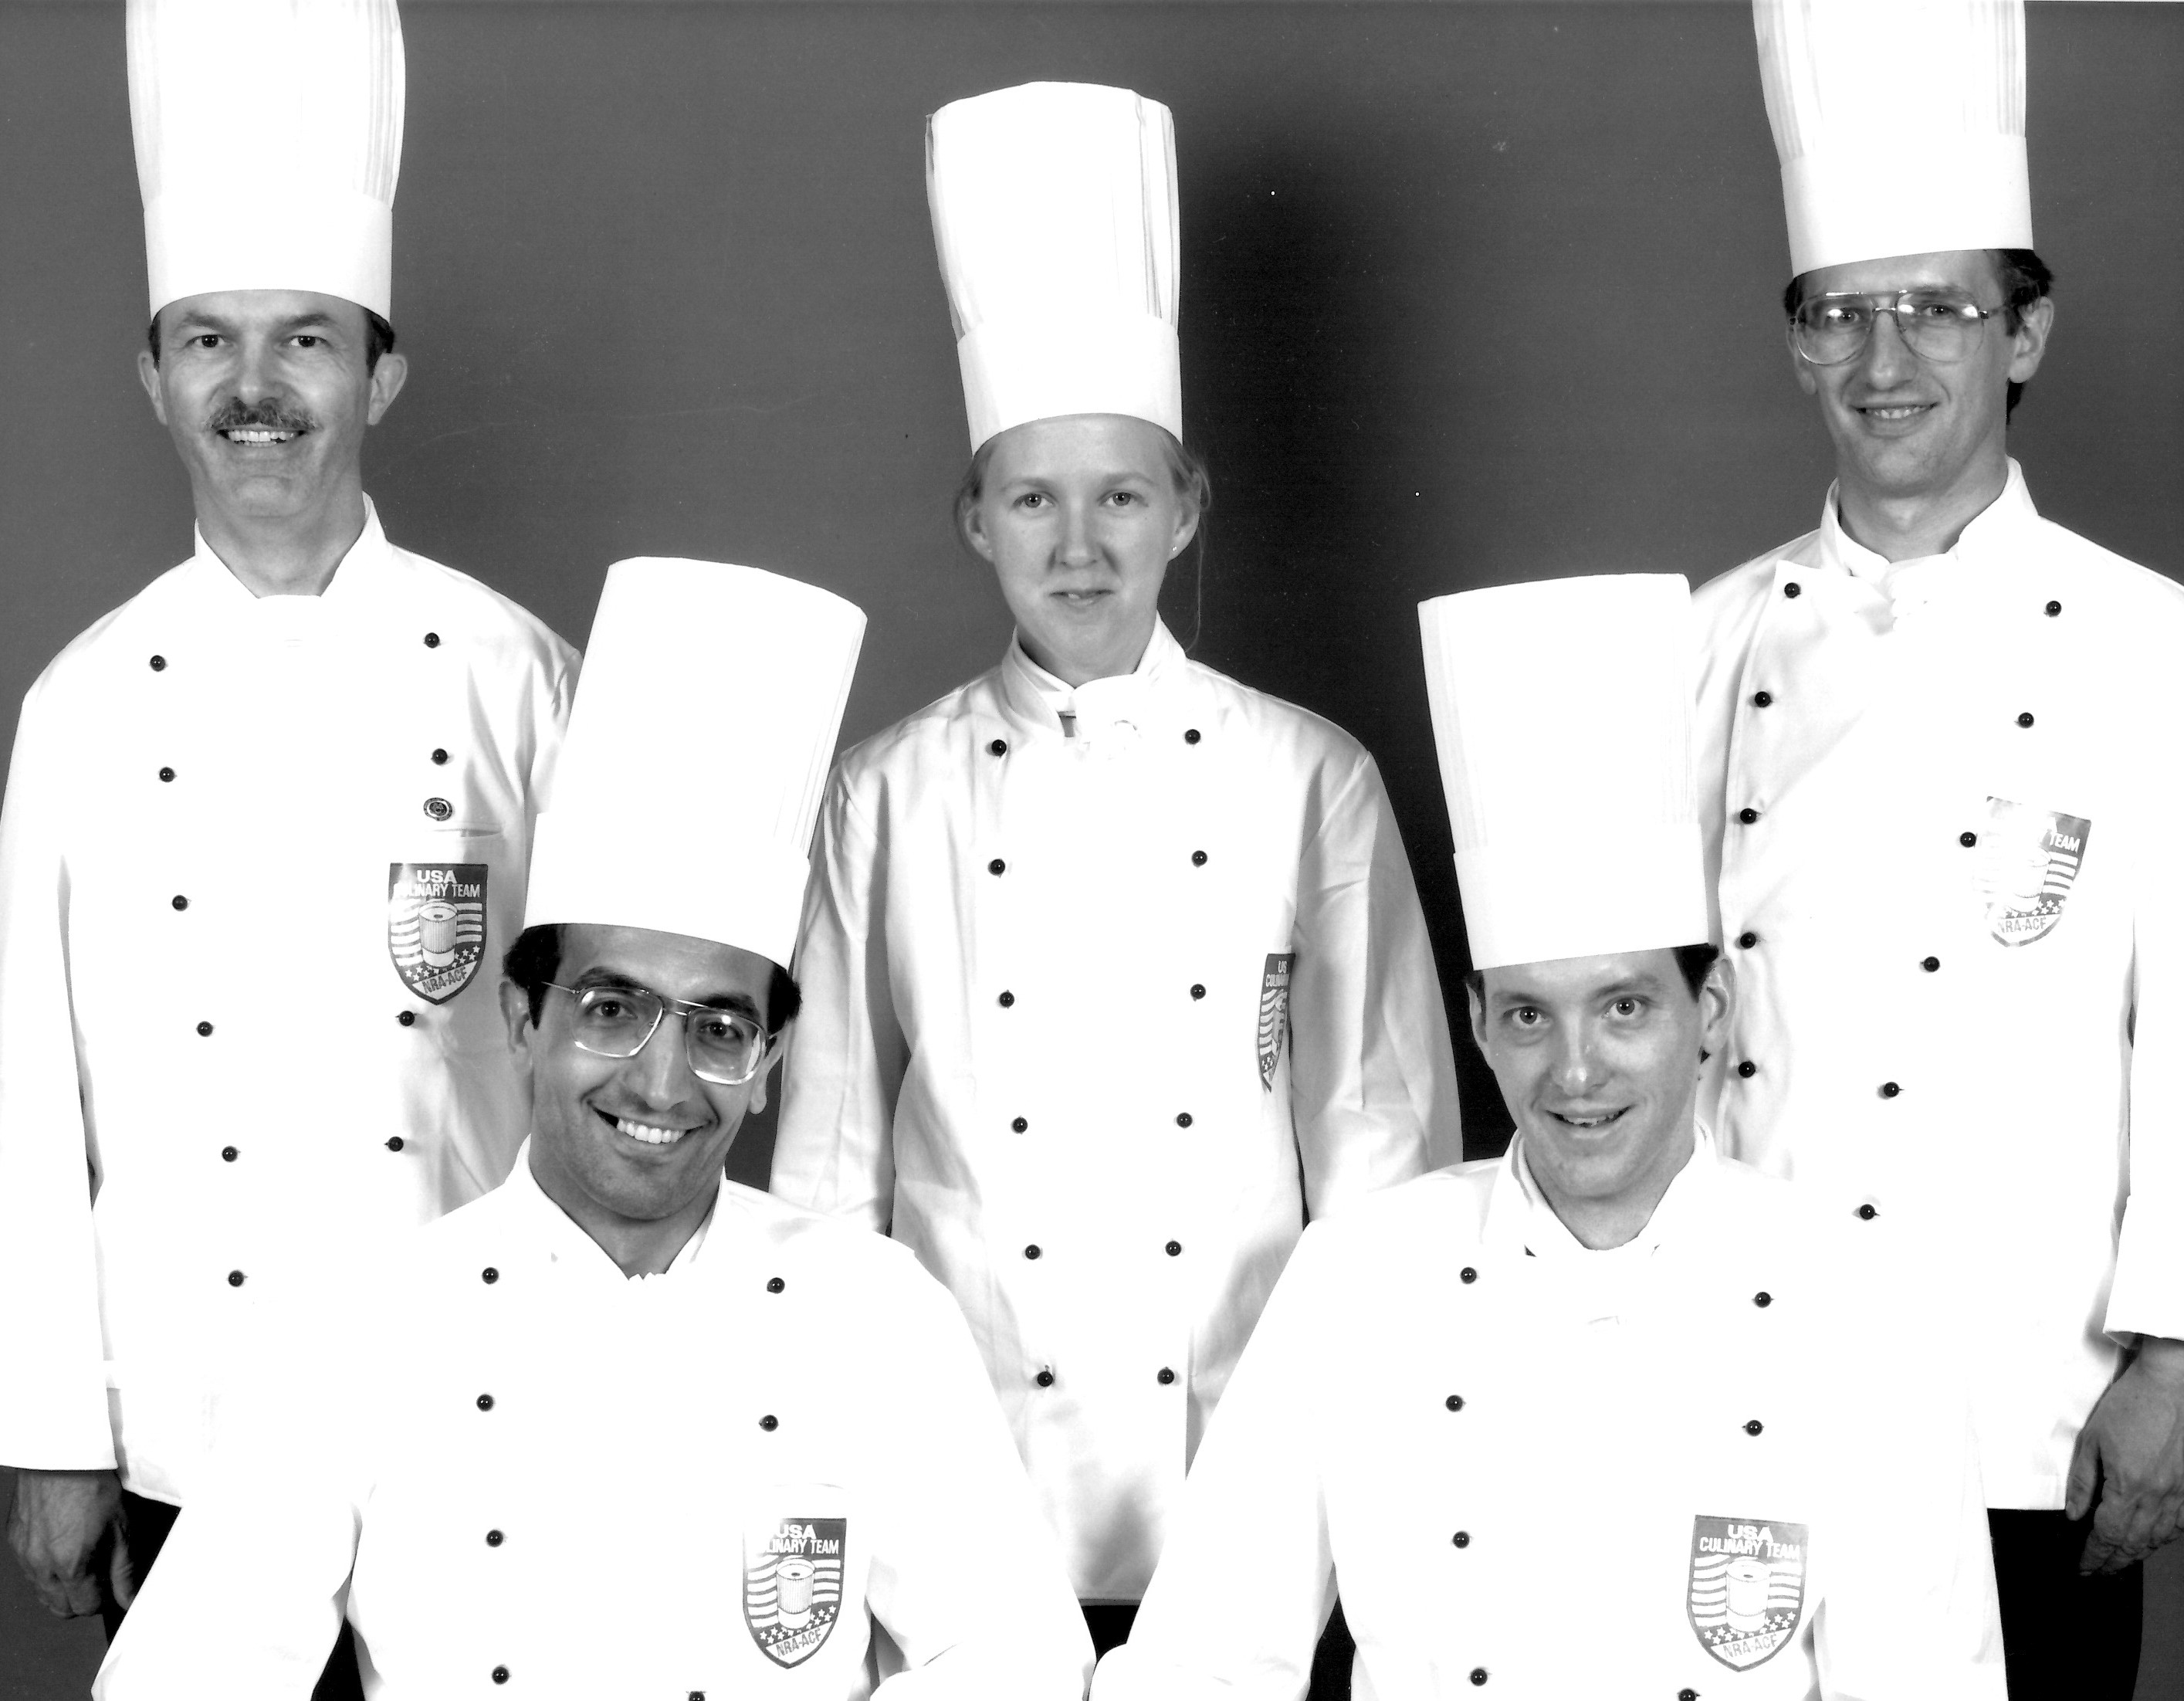 USA National Team World Culinary Champions